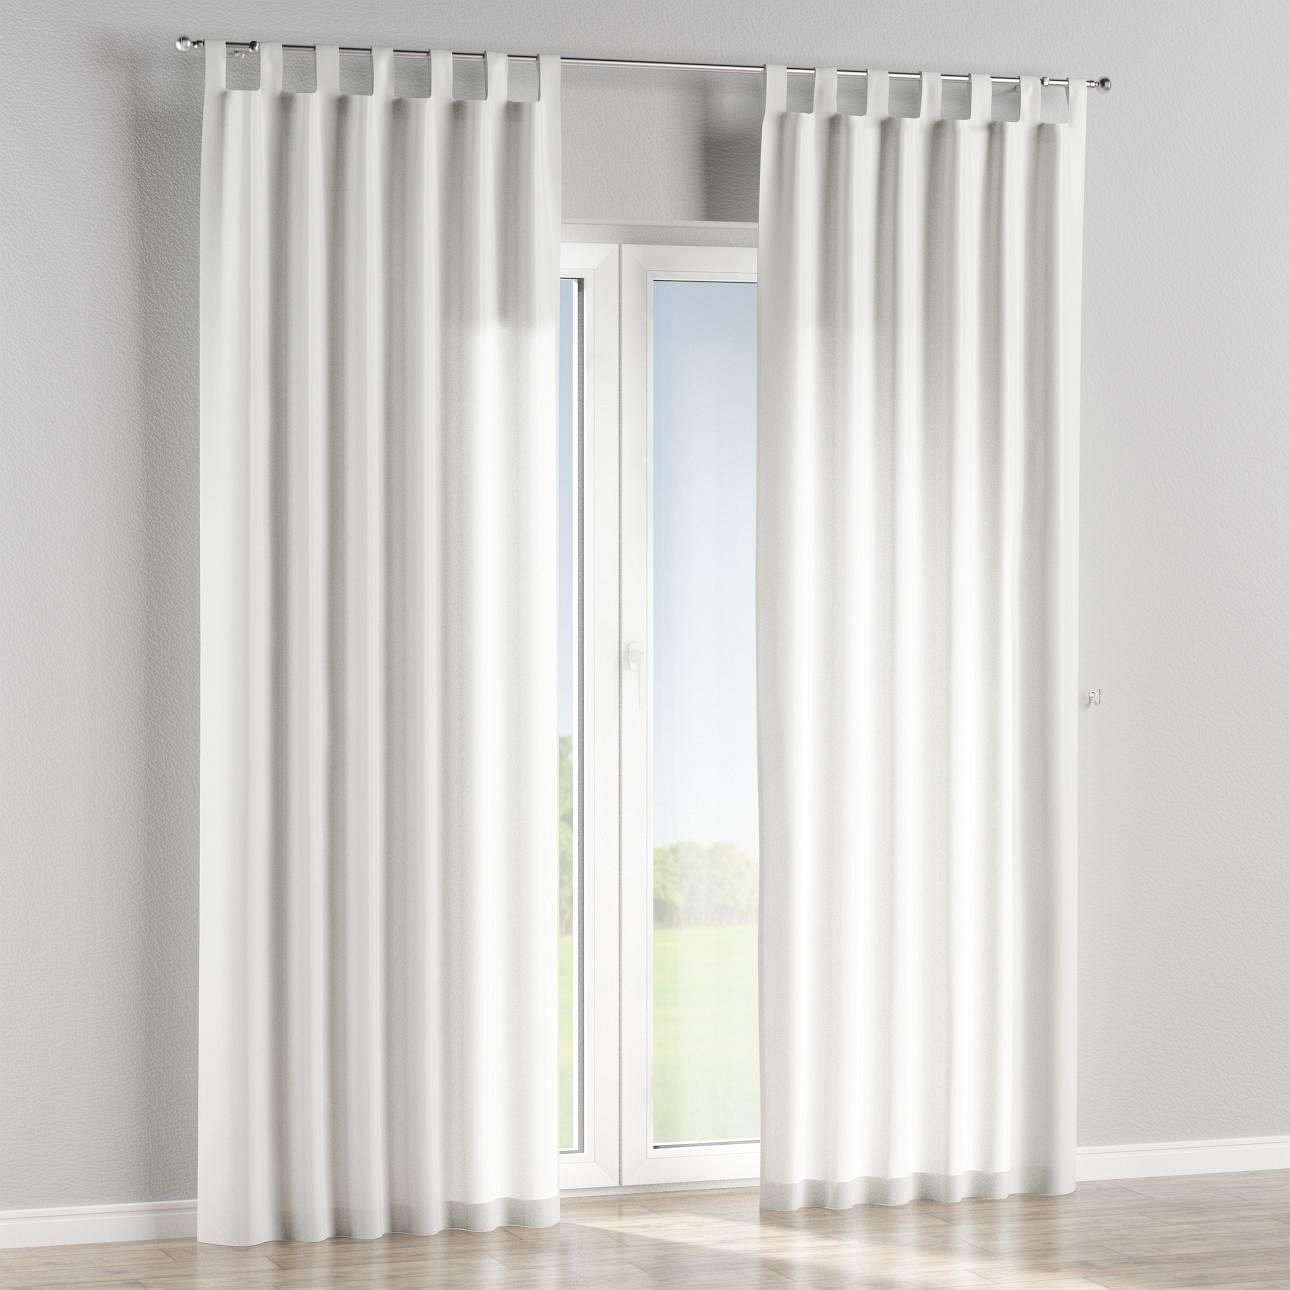 Tab top lined curtains in collection Bristol, fabric: 125-15